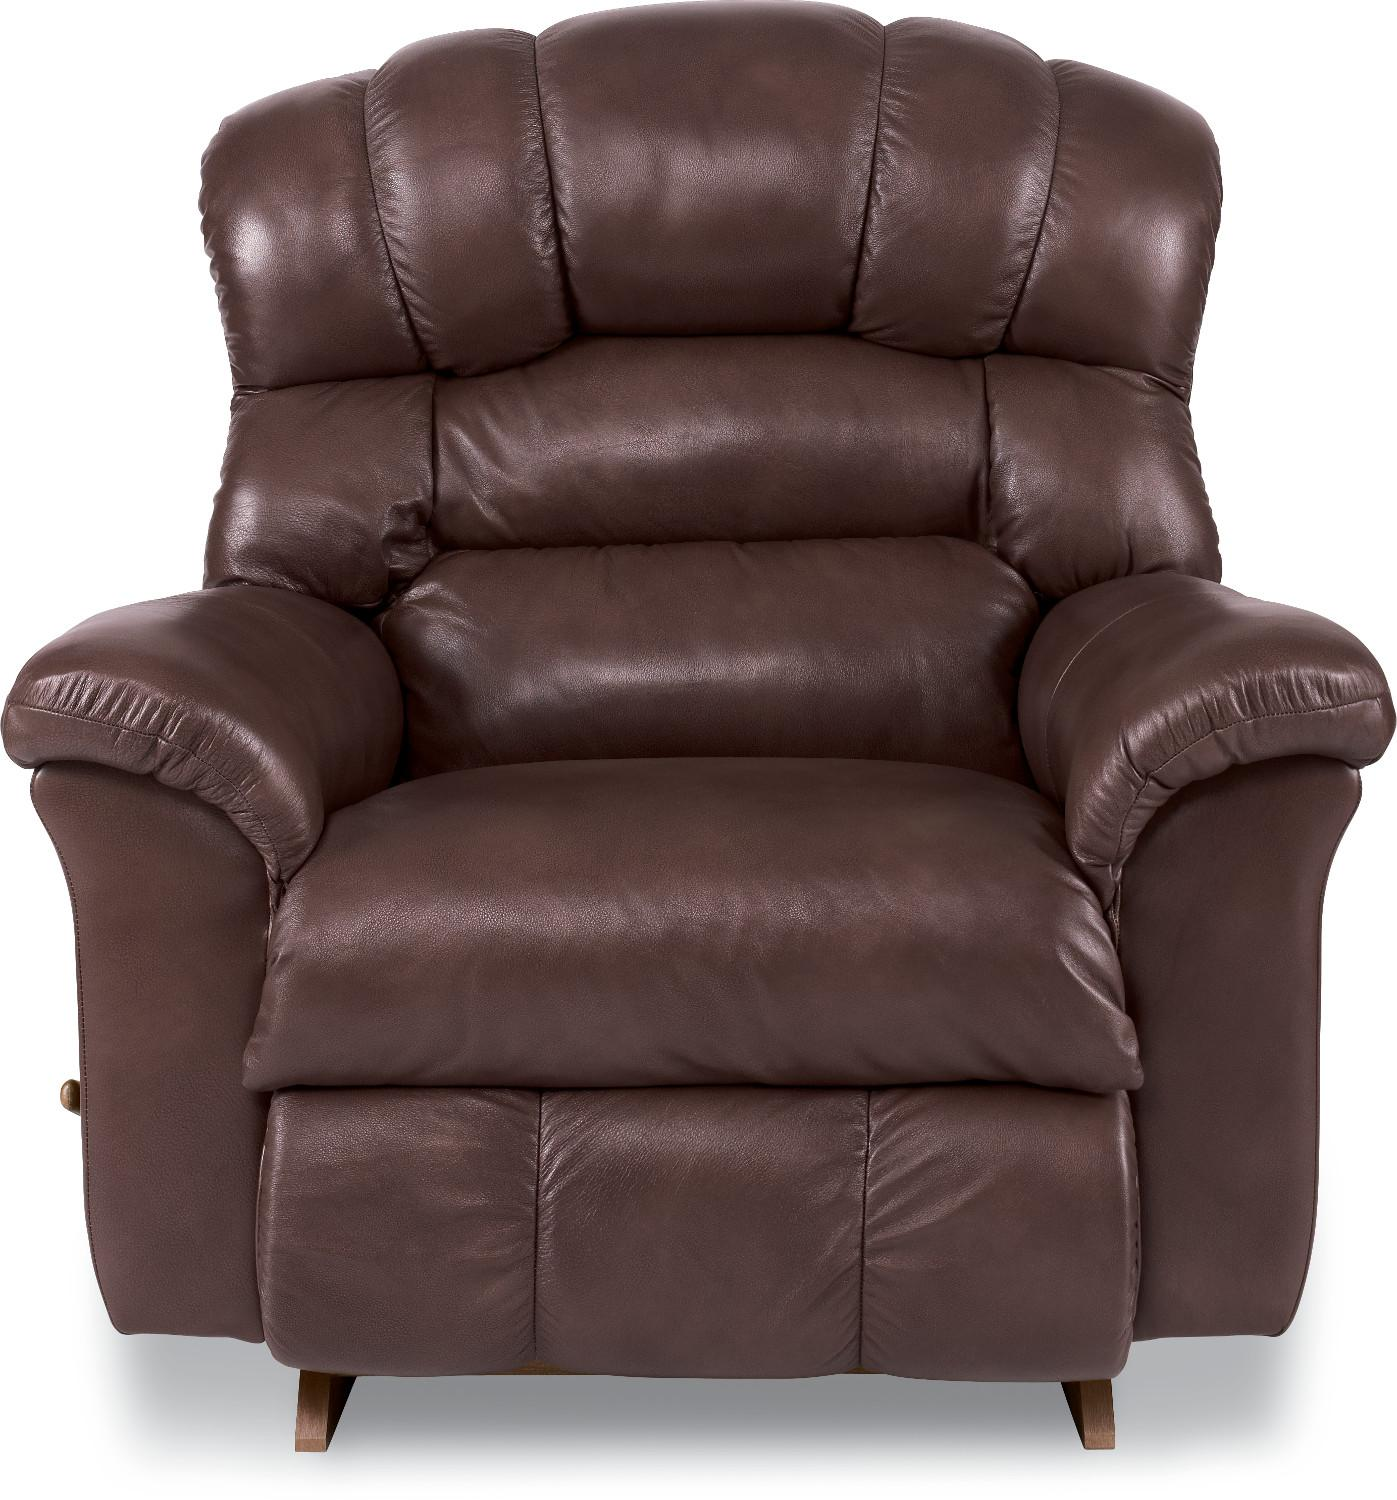 Crandell Reclina Rocker Reclining Chair By La Z Boy Wolf Furniture